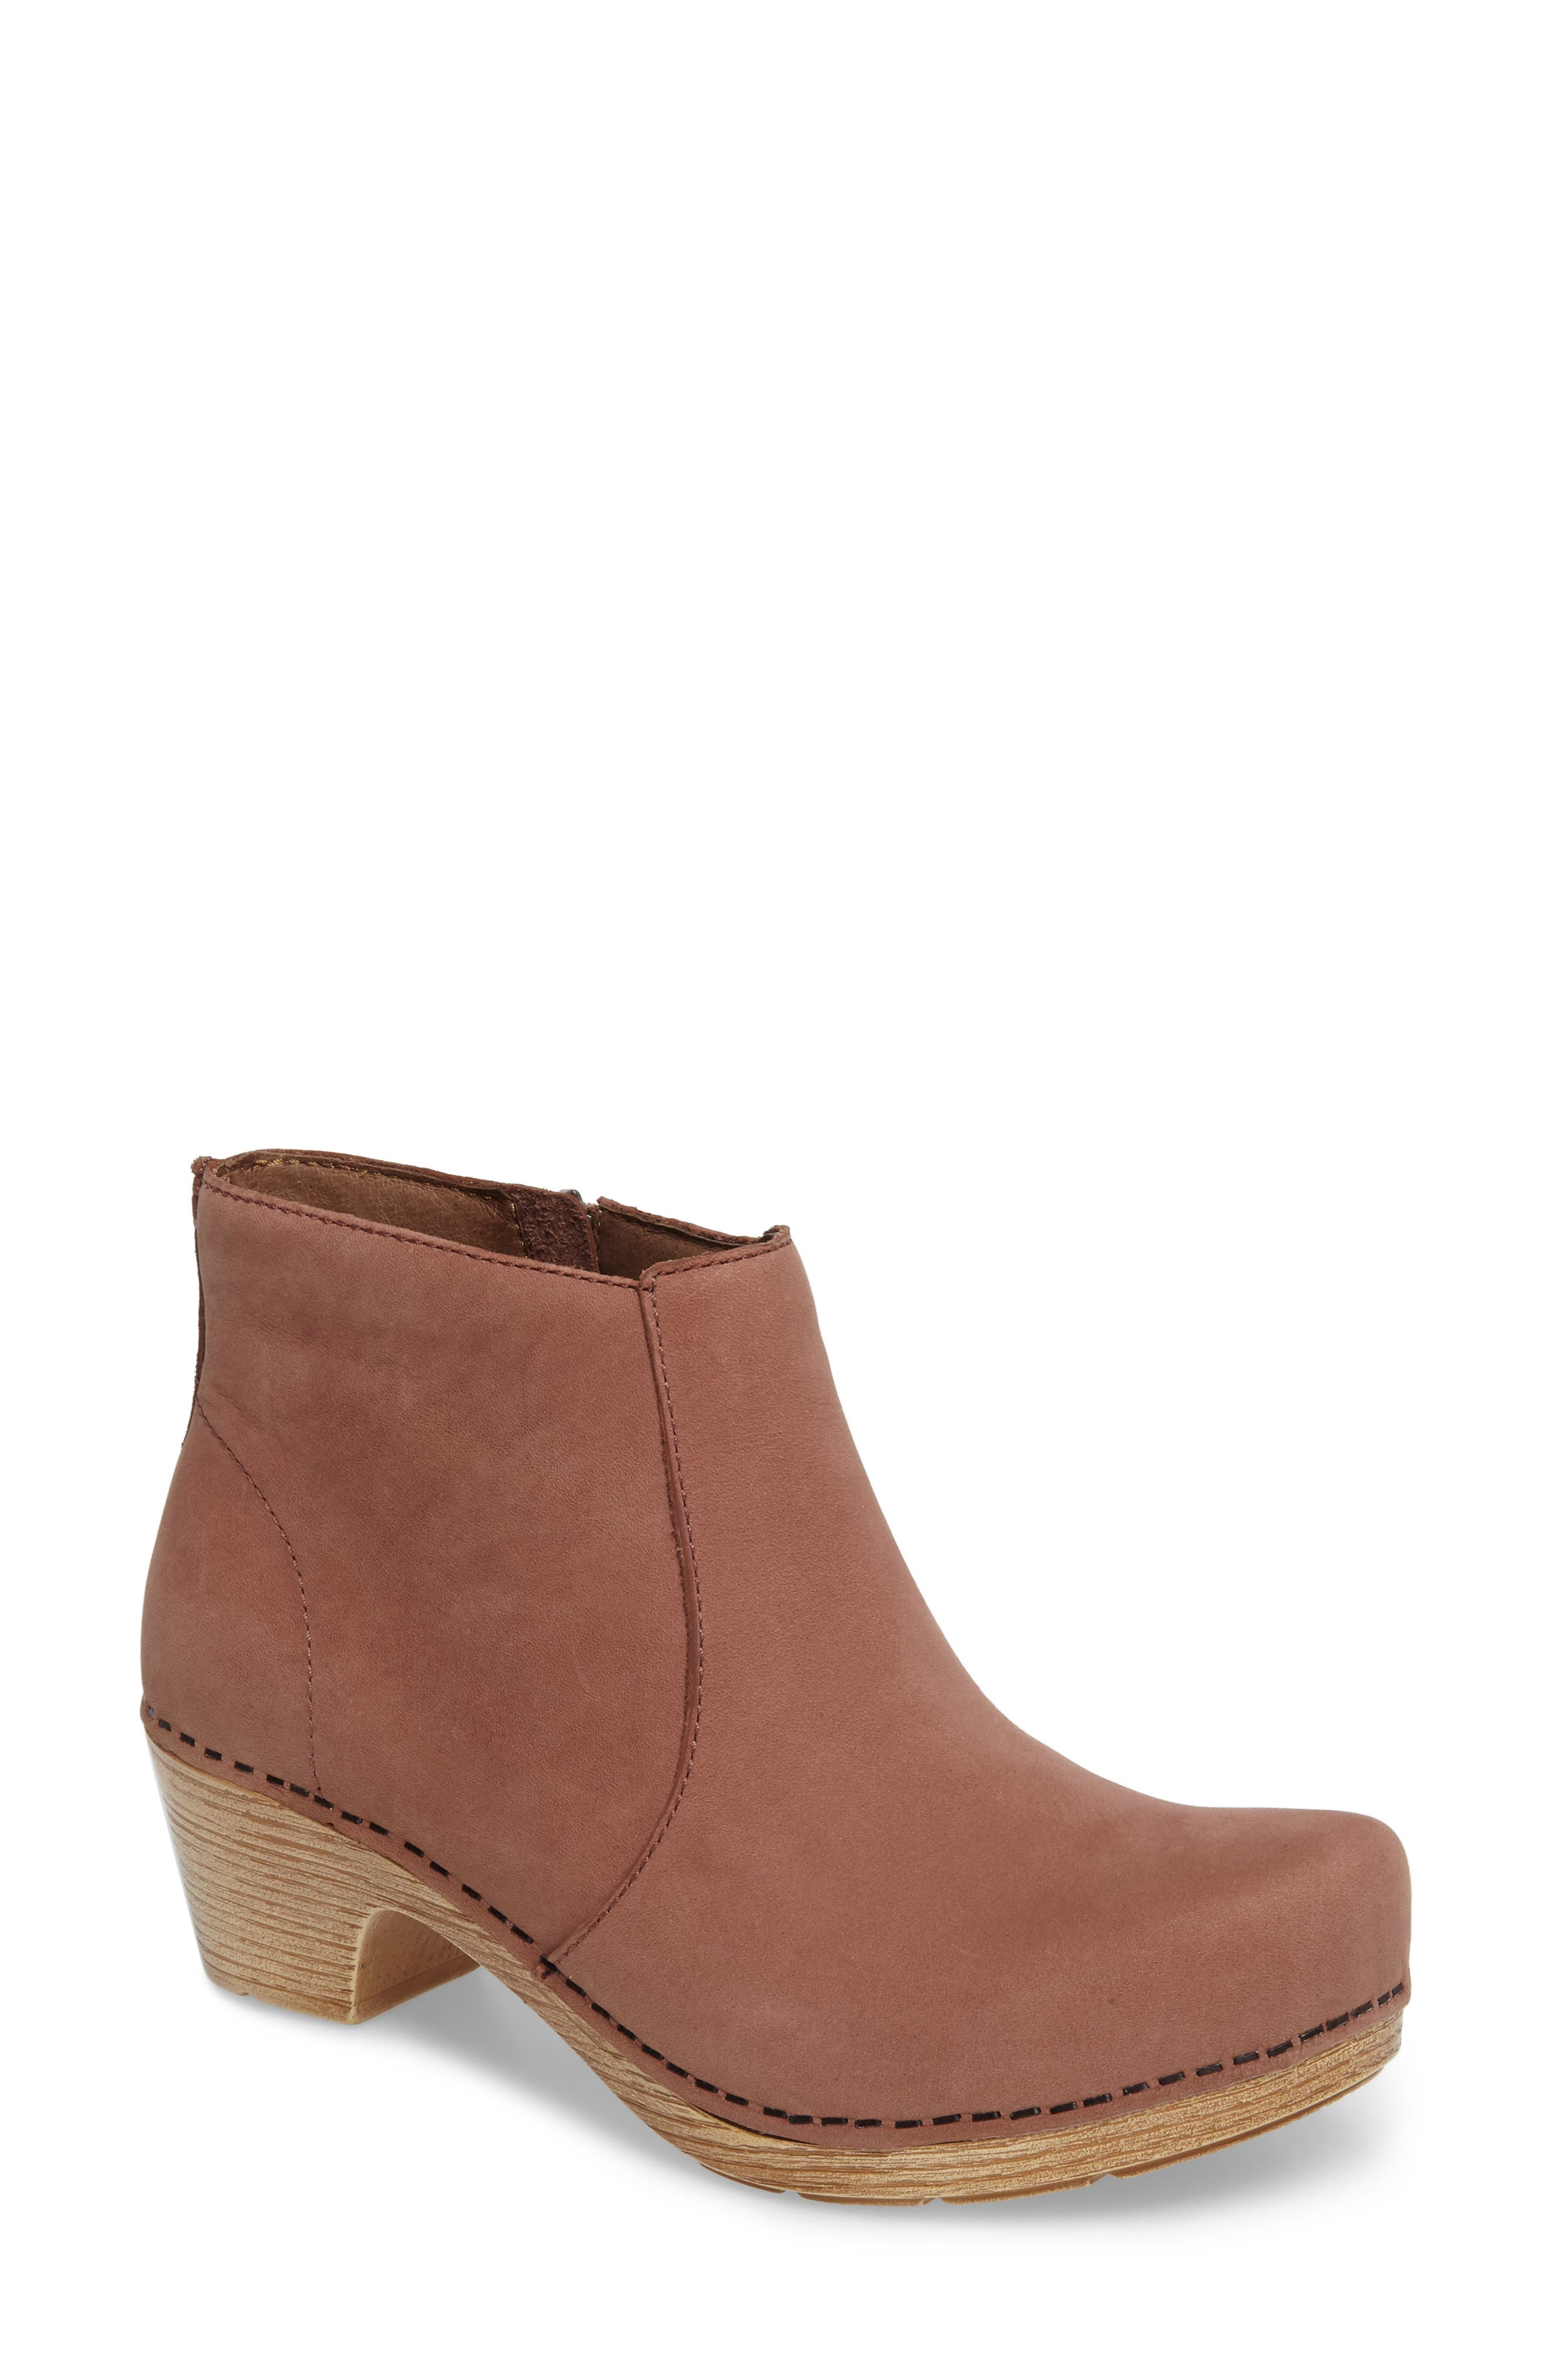 'Maria' Bootie,                             Main thumbnail 1, color,